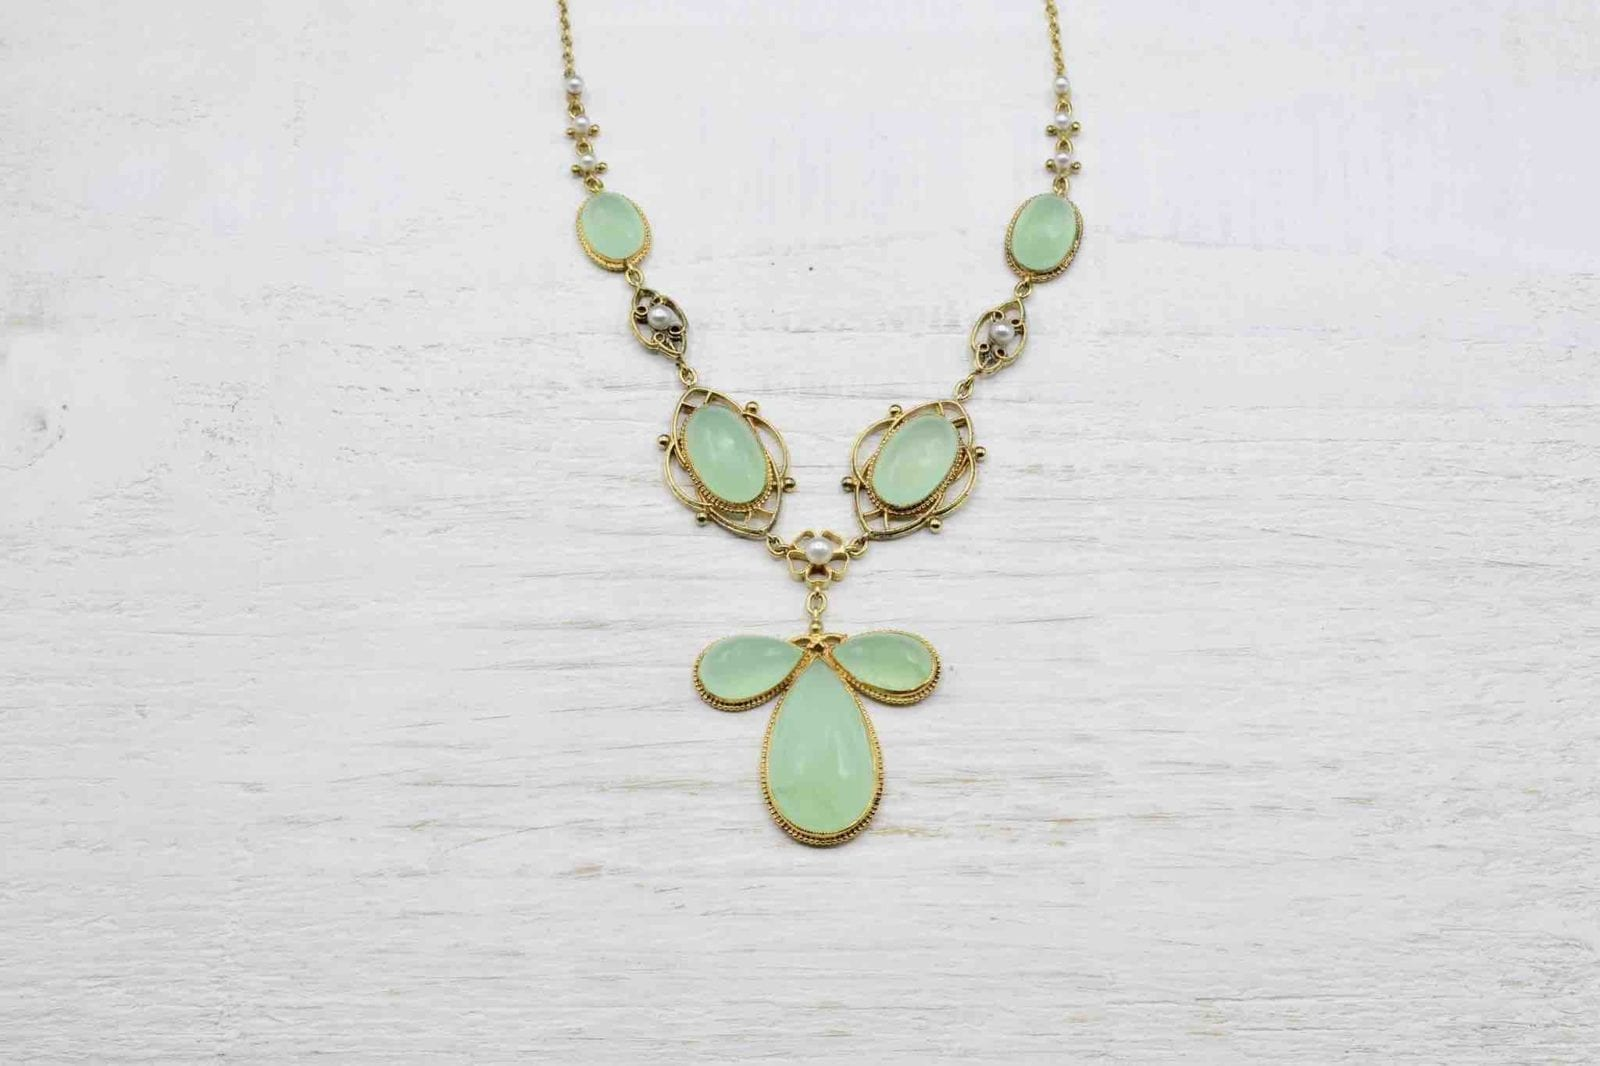 Collier ancien chrysoprases en or jaune 18k